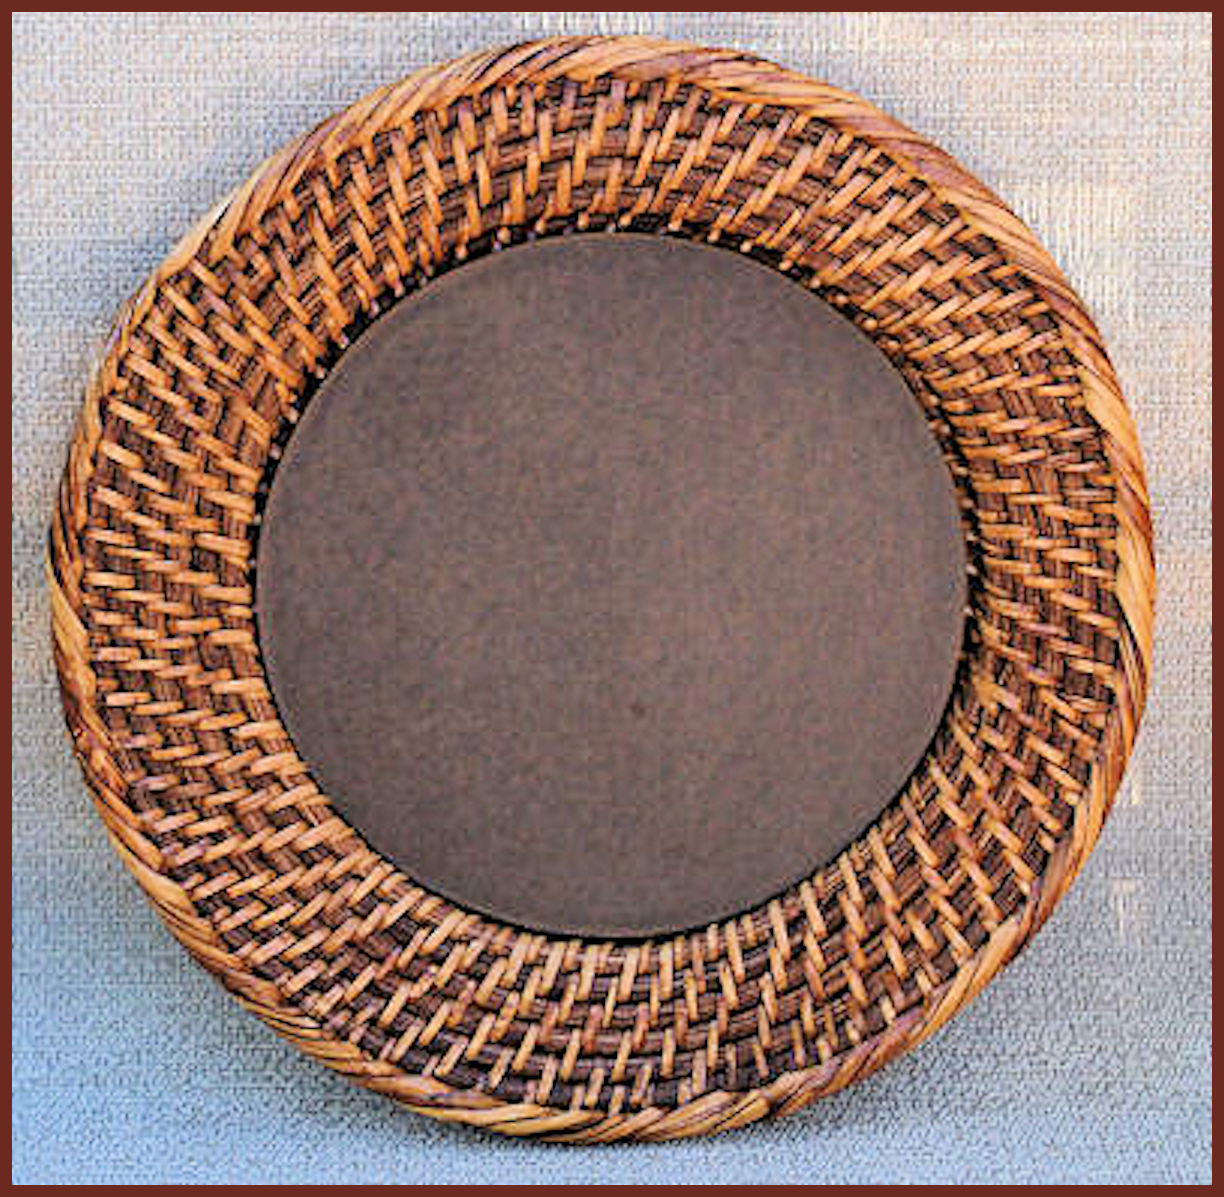 plate-round-rattan-charger-1661-boarder.jpg